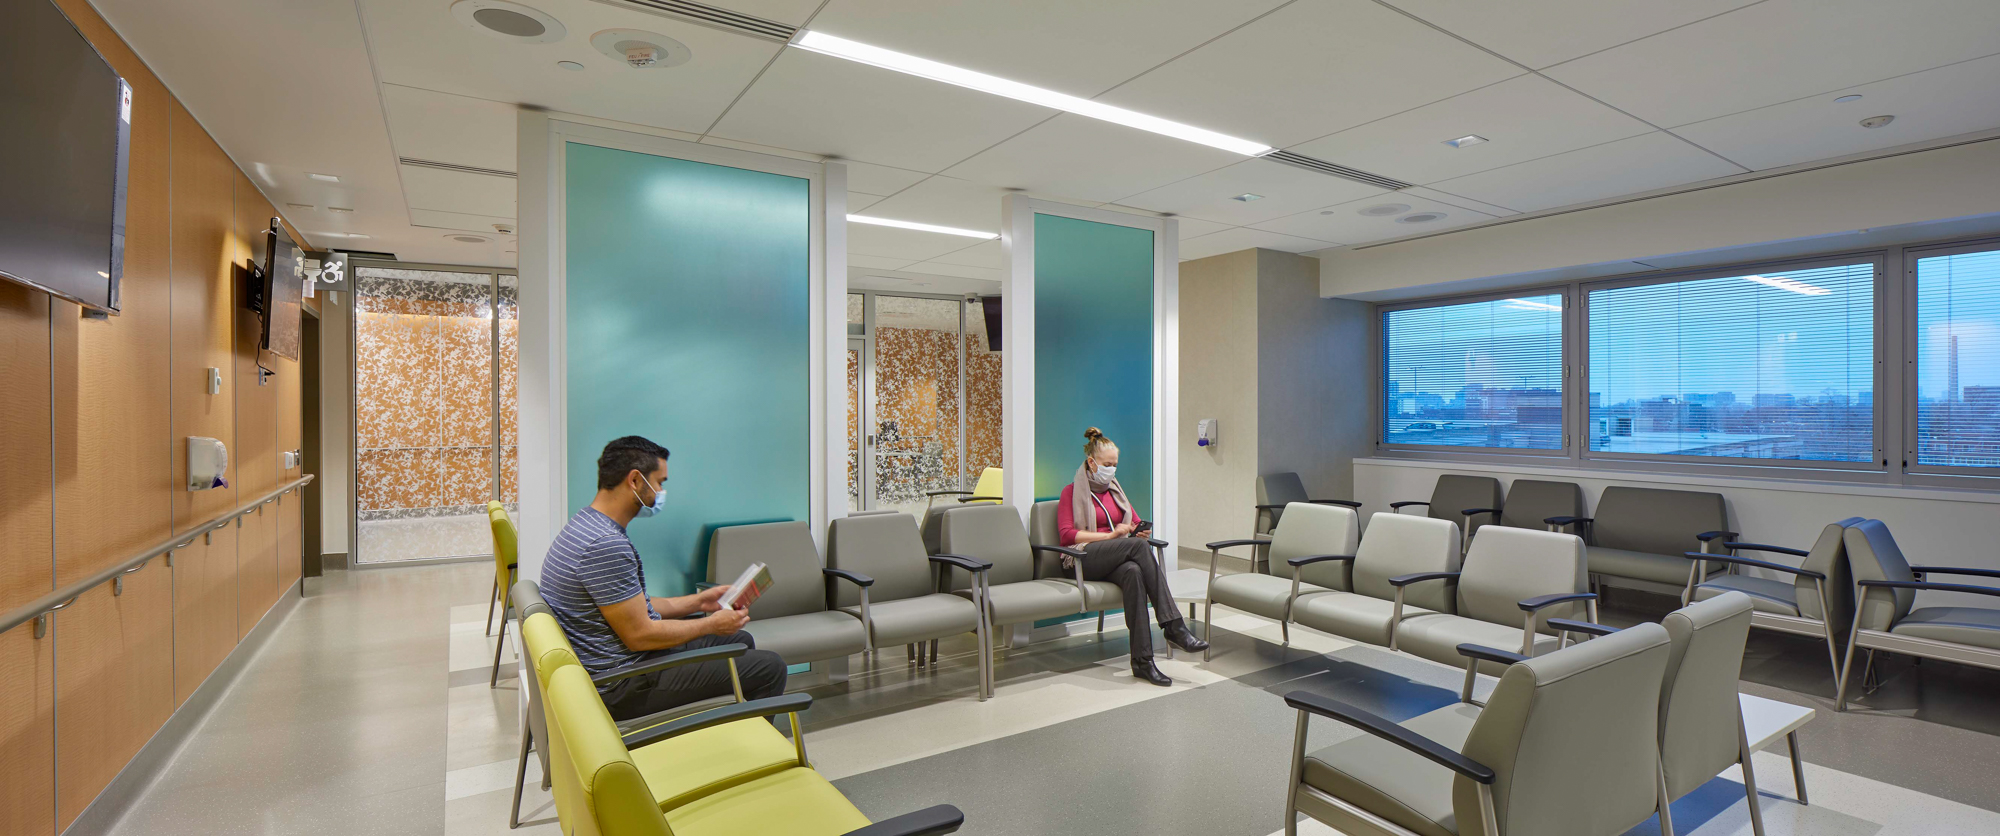 Photo of patient and family waiting lounge